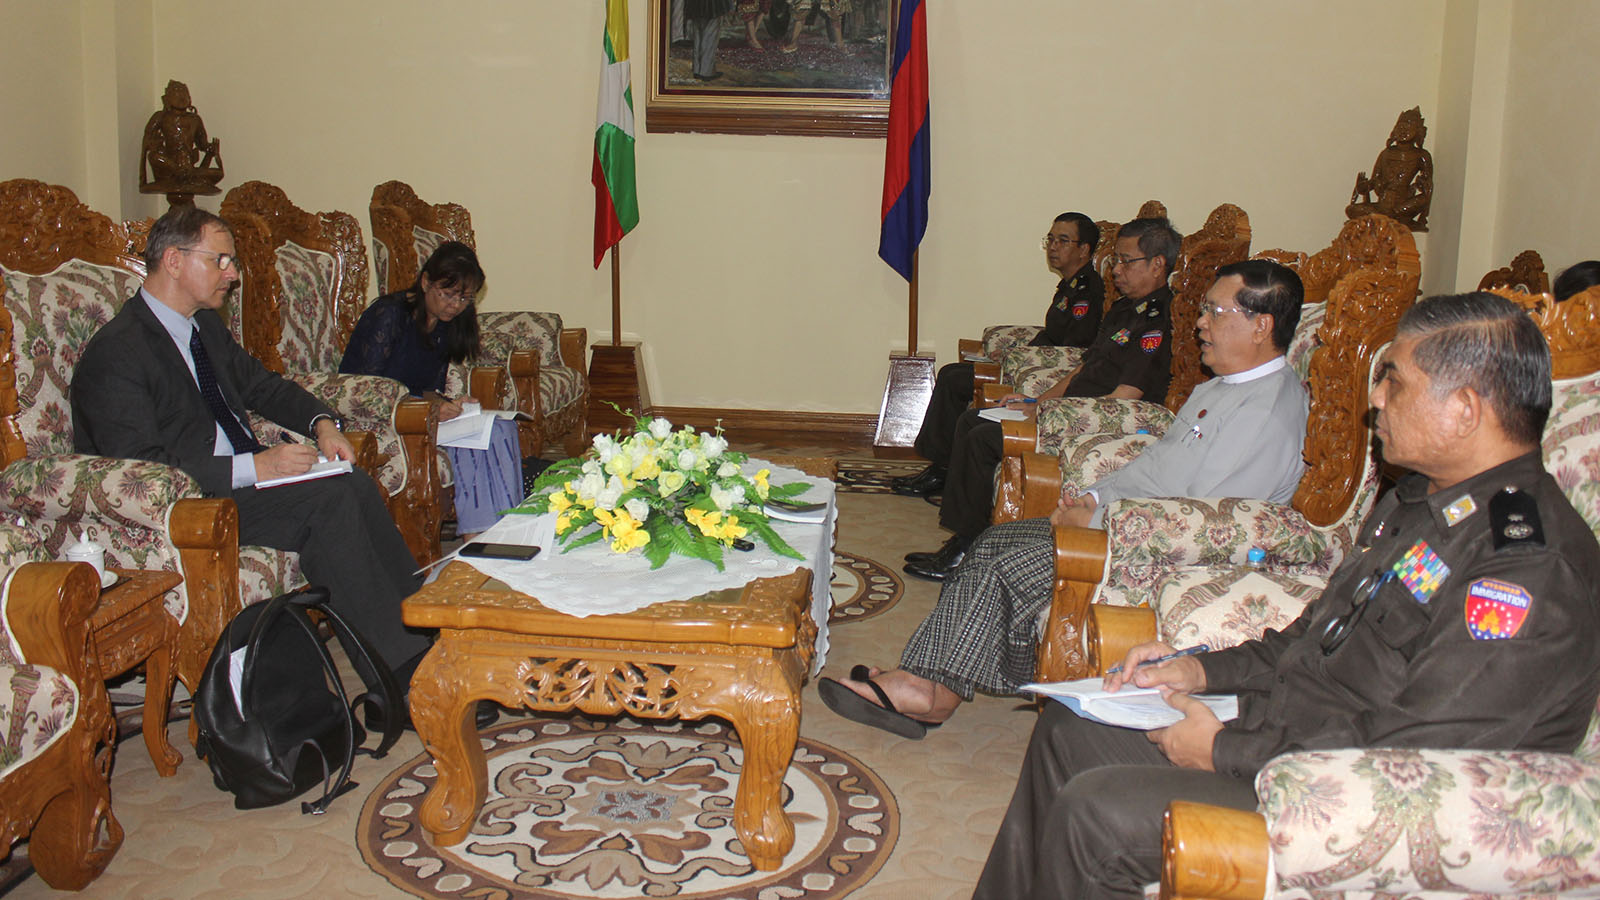 Union Minister U Thein Swe meets with UNHCR Representative Mr Johan Cels in Nay Pyi Taw on 10 July. Photo: MNA